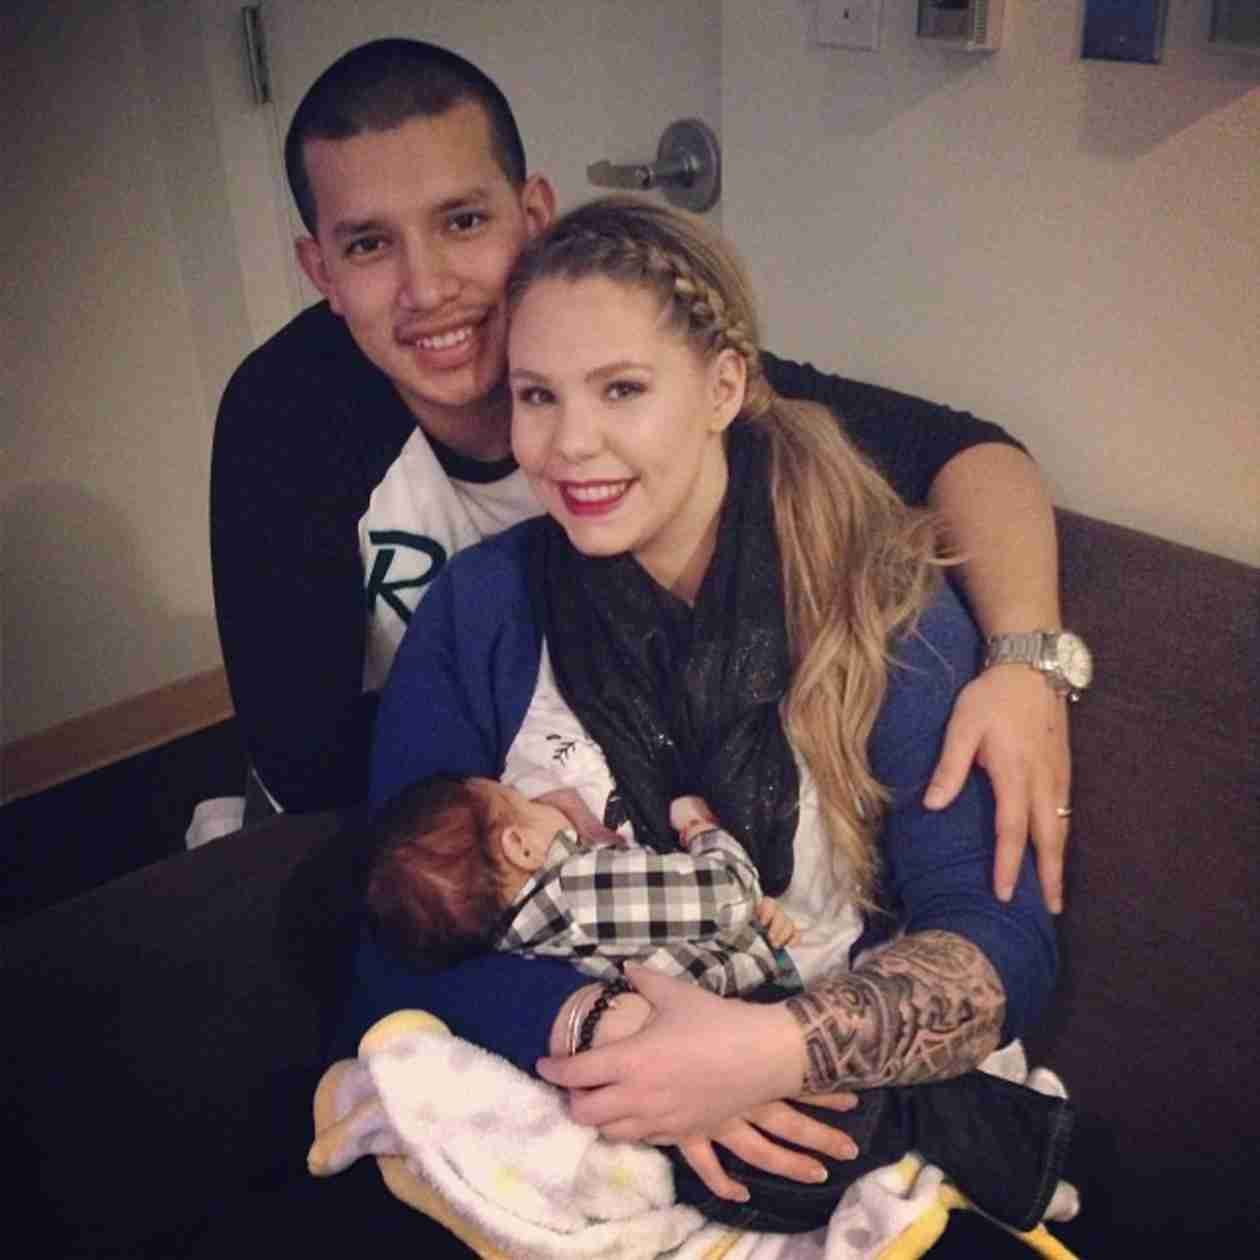 Were You Surprised Kailyn Lowry's Mom Missed the Birth of Lincoln?